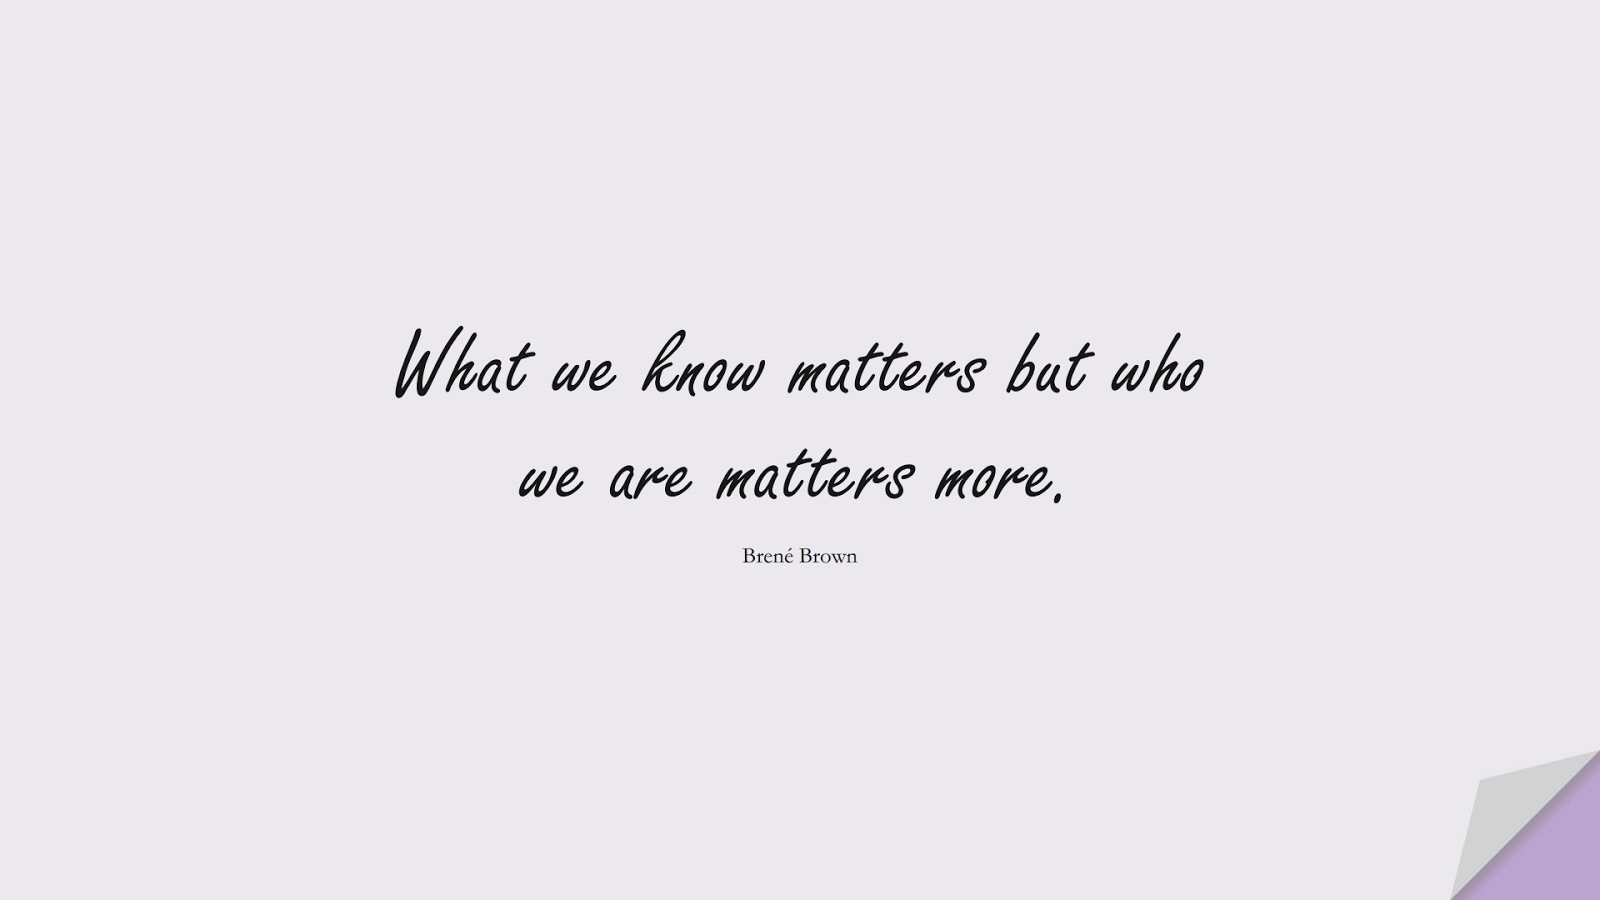 What we know matters but who we are matters more. (Brené Brown);  #CharacterQuotes